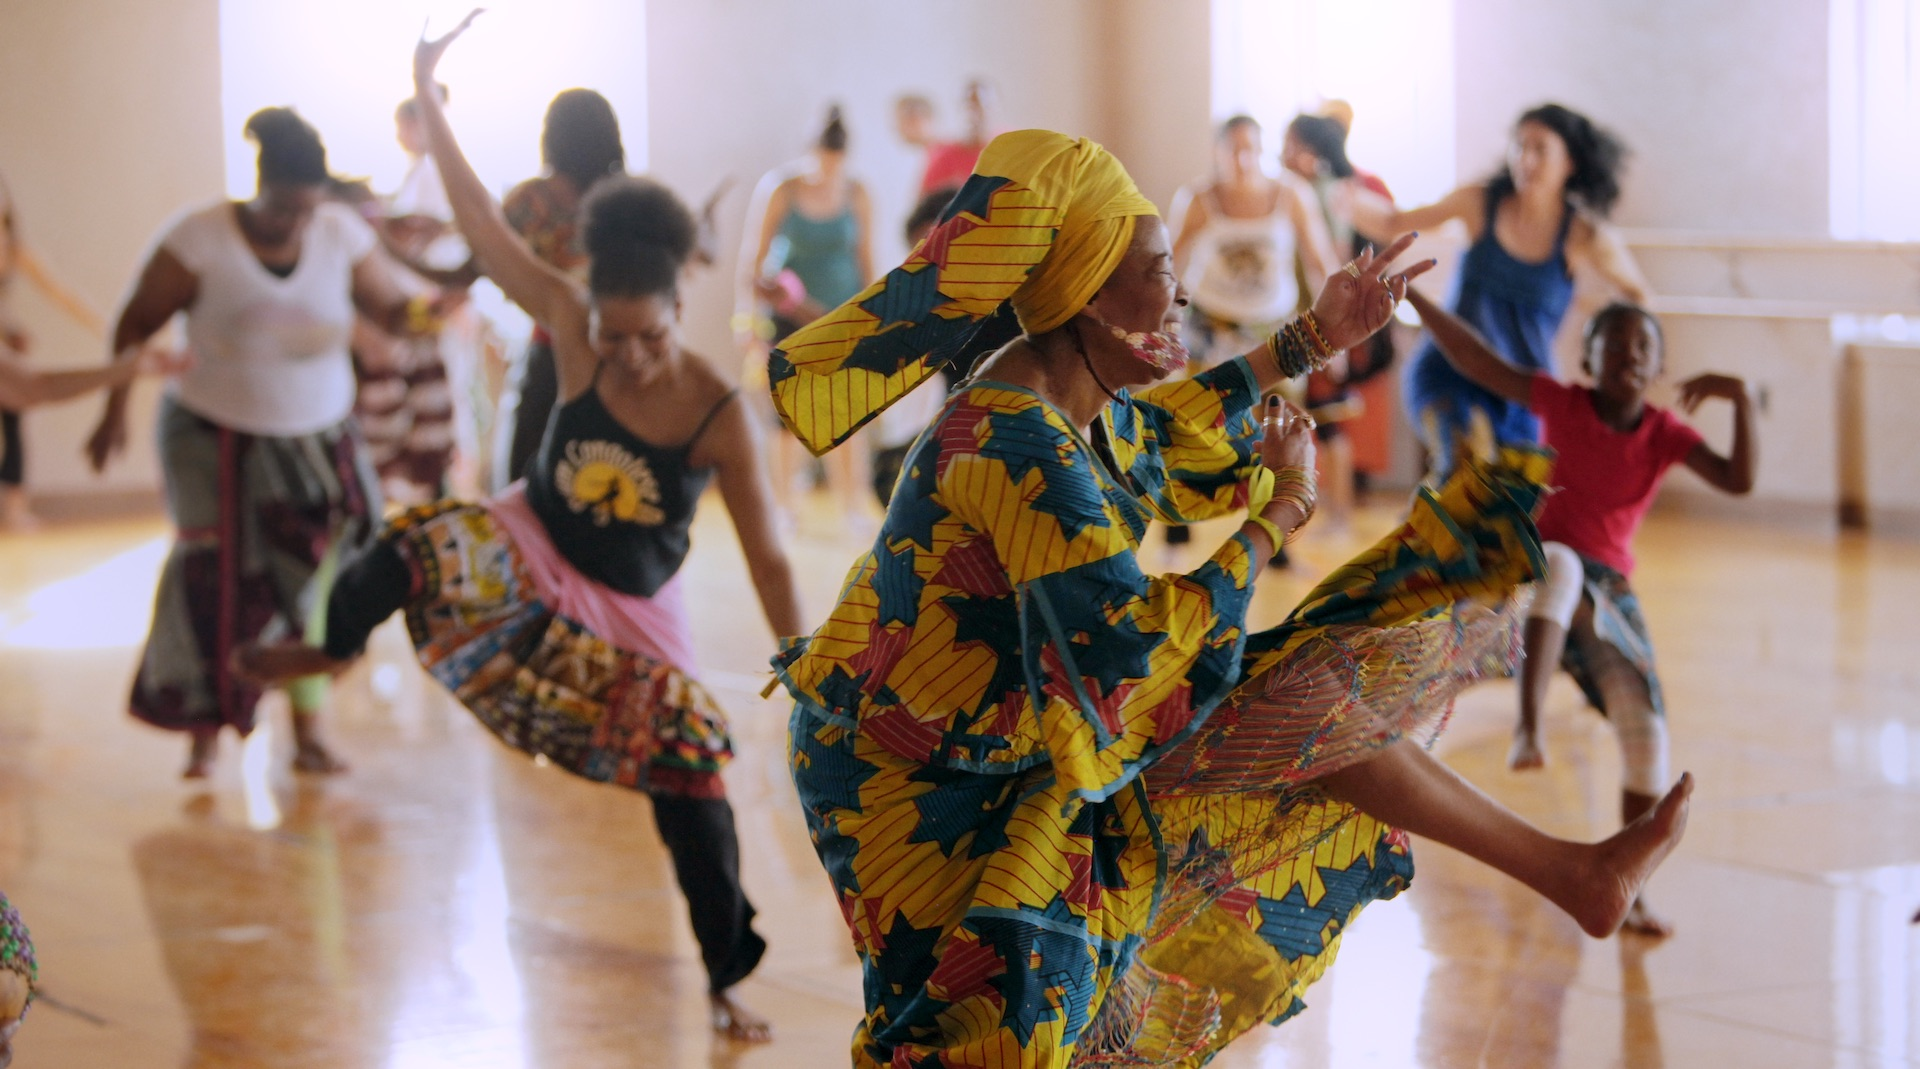 The Diamano Coura West African Dance Company rehearses at the Malonga Casquelourd Center for the Arts.